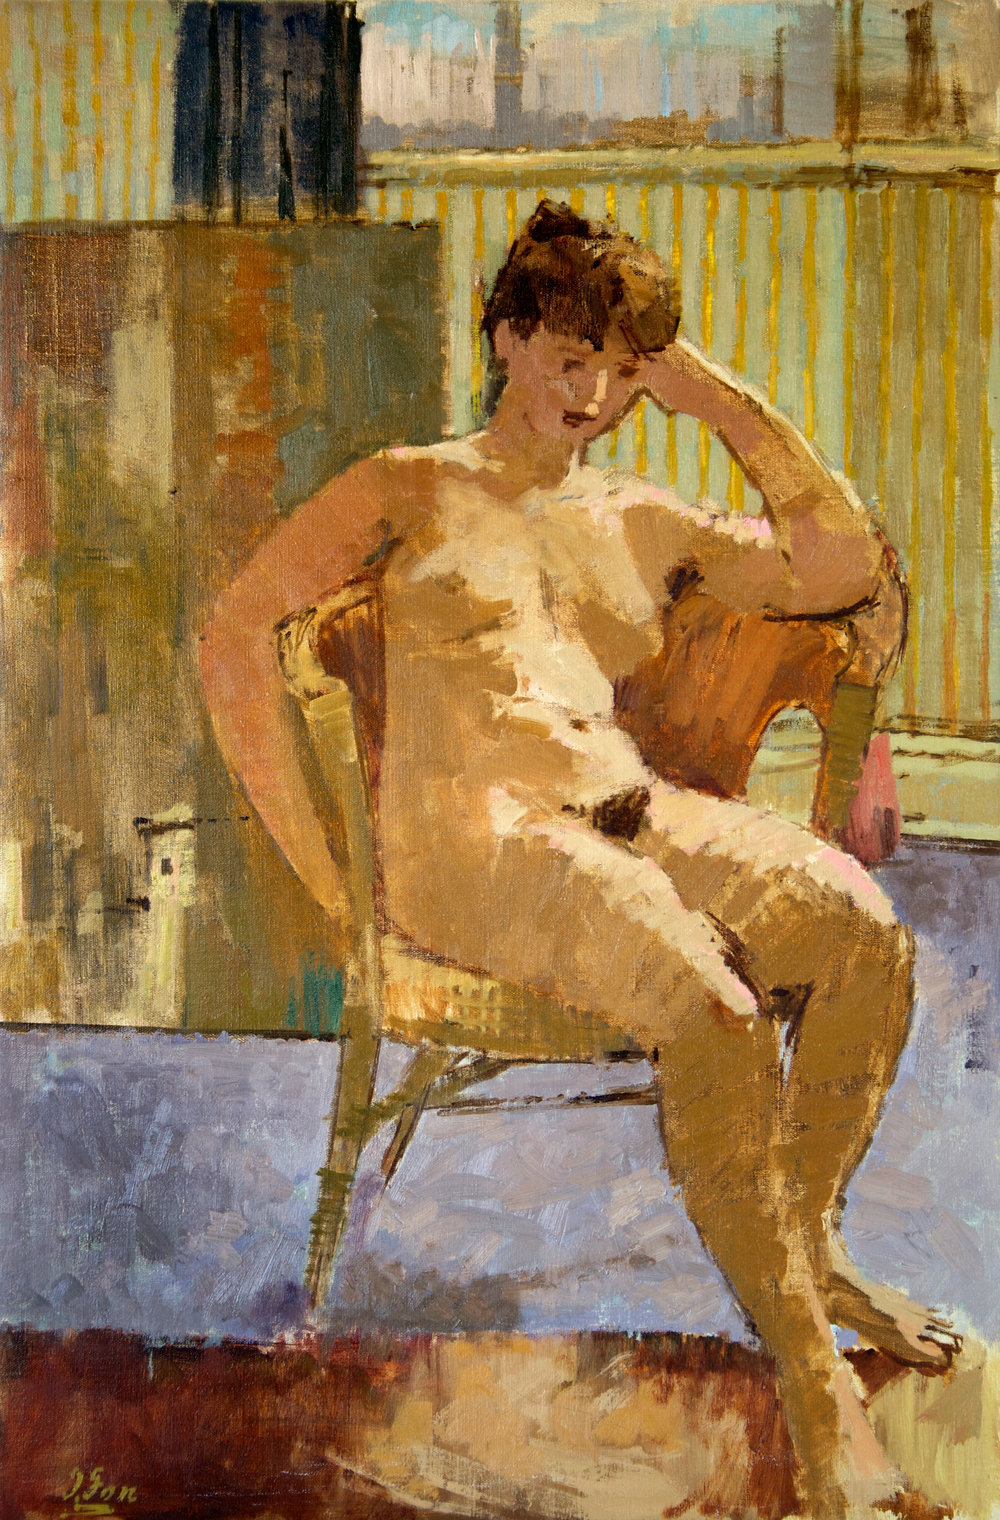 1958_Seated_Nude_with_Painting_oil_on_linen_36x24in_PF292.jpg